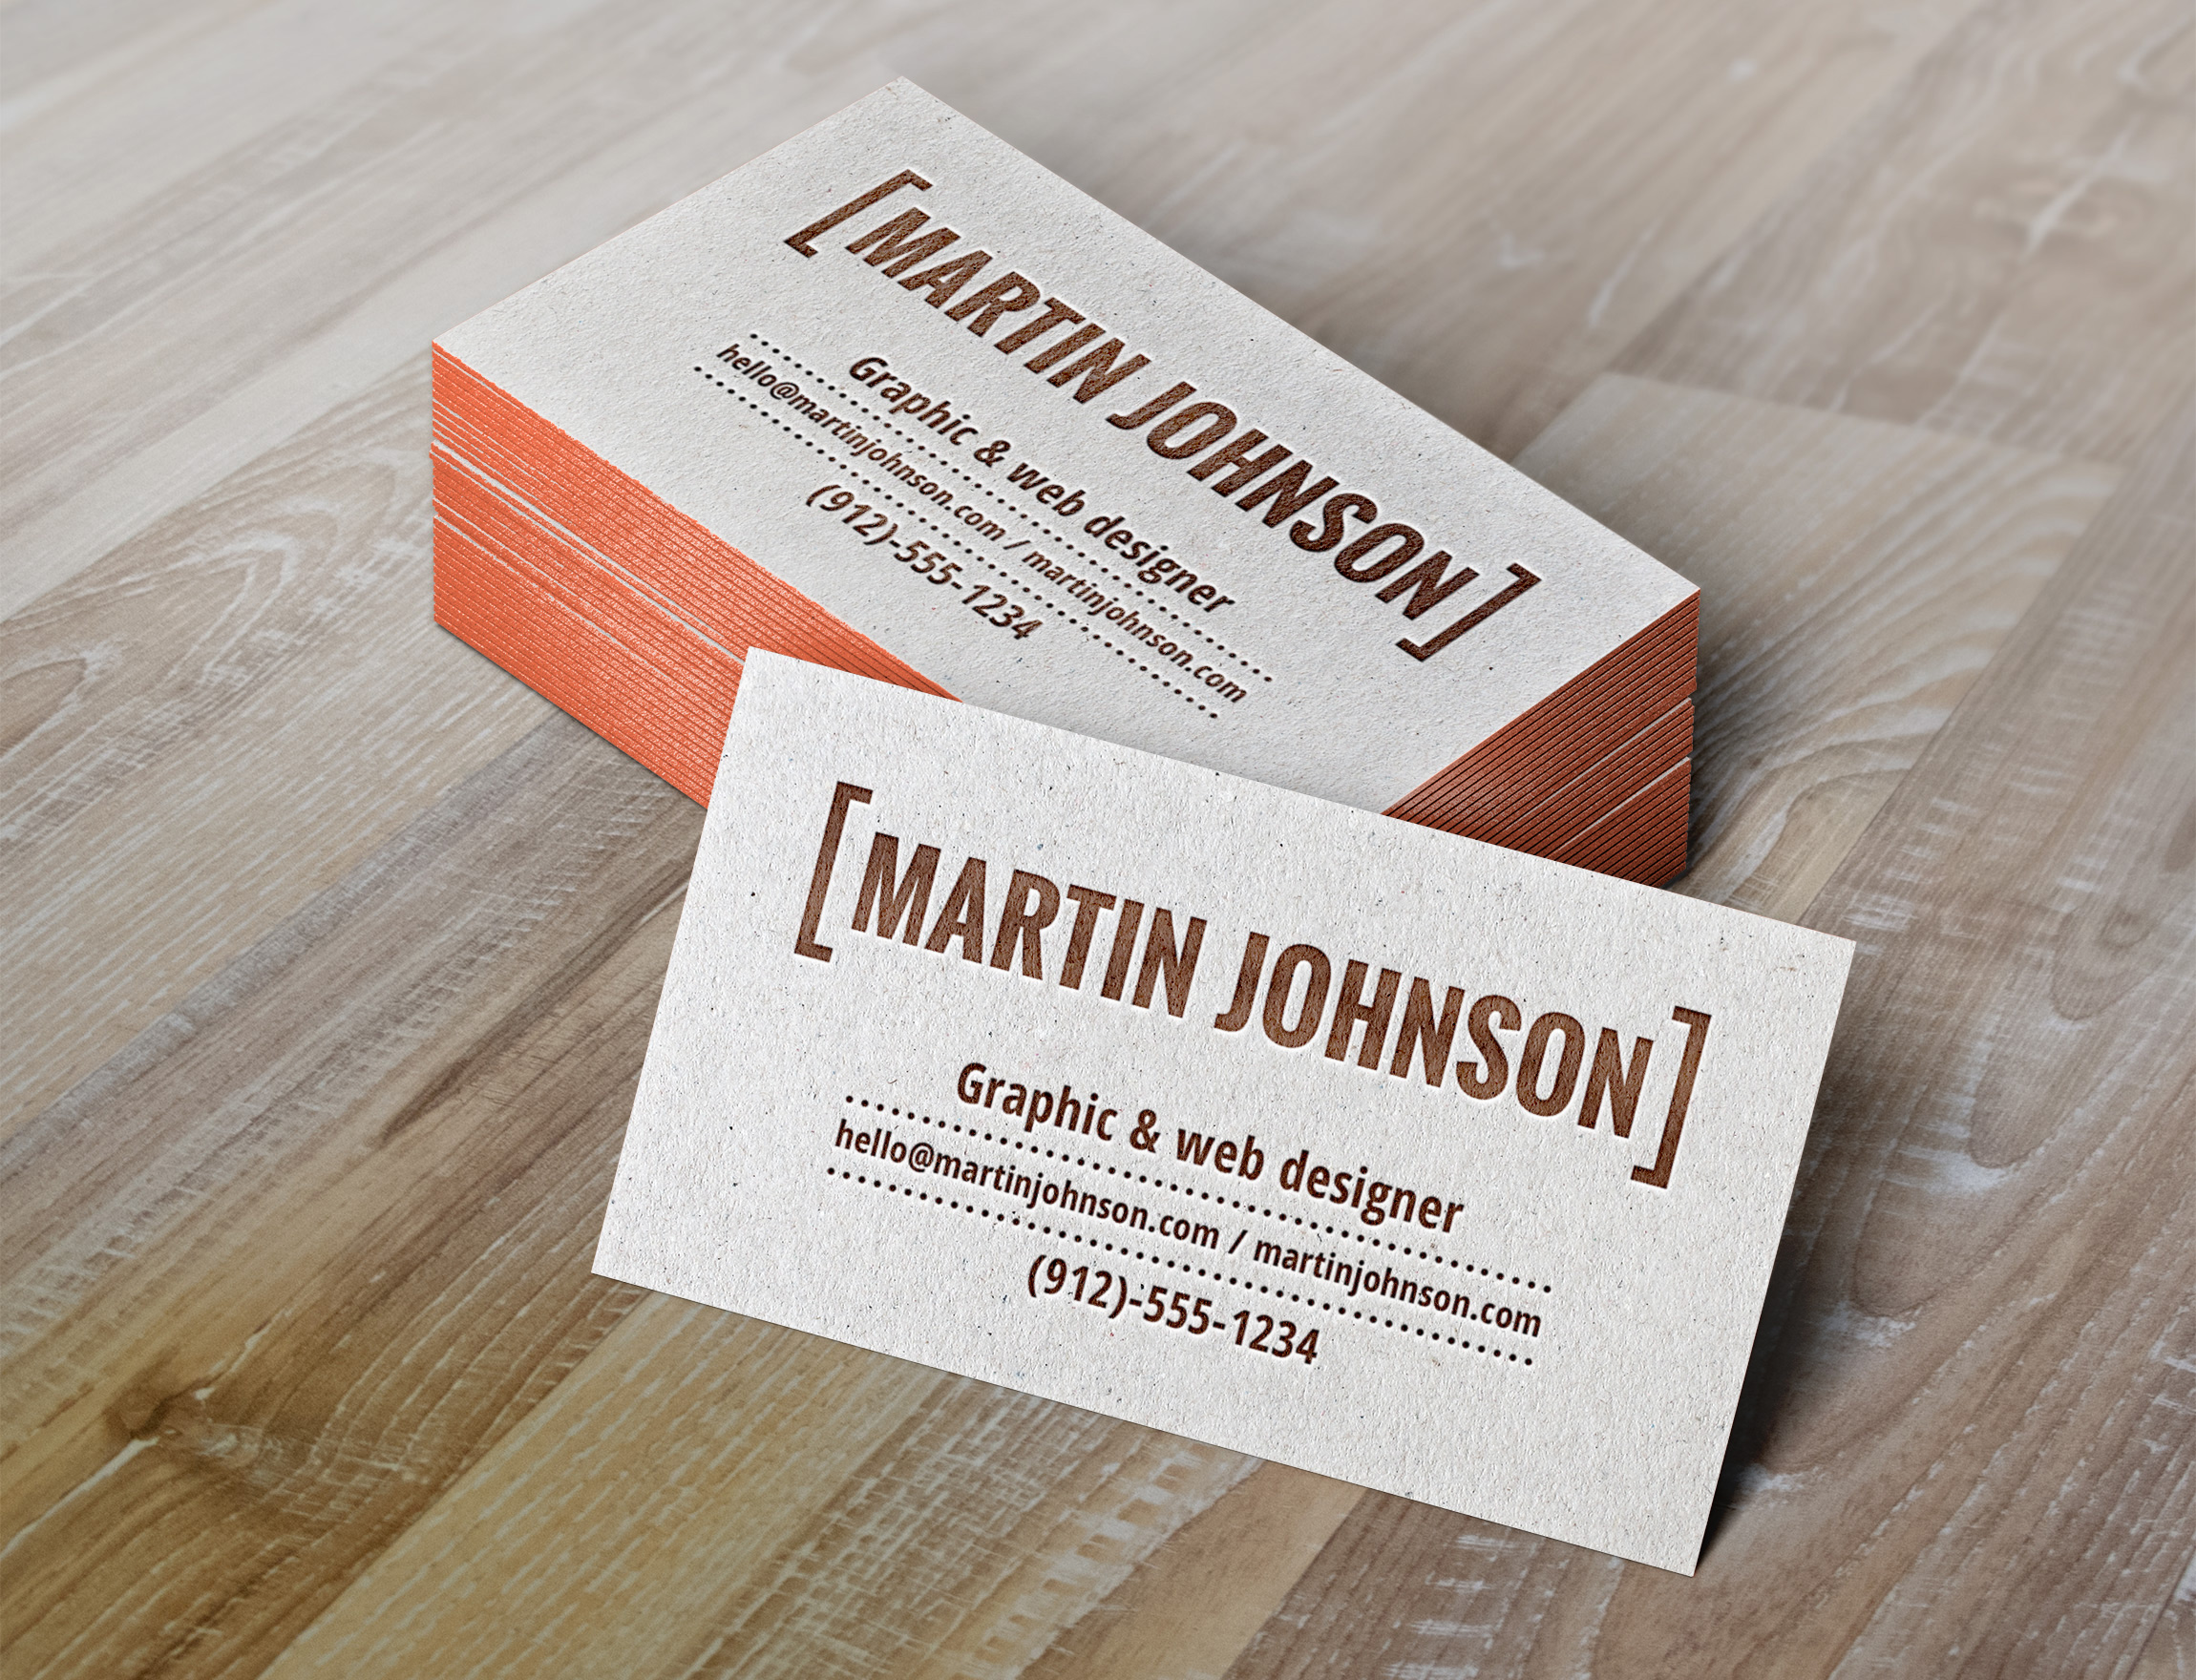 Letterpress Business Cards MockUp | GraphicBurger